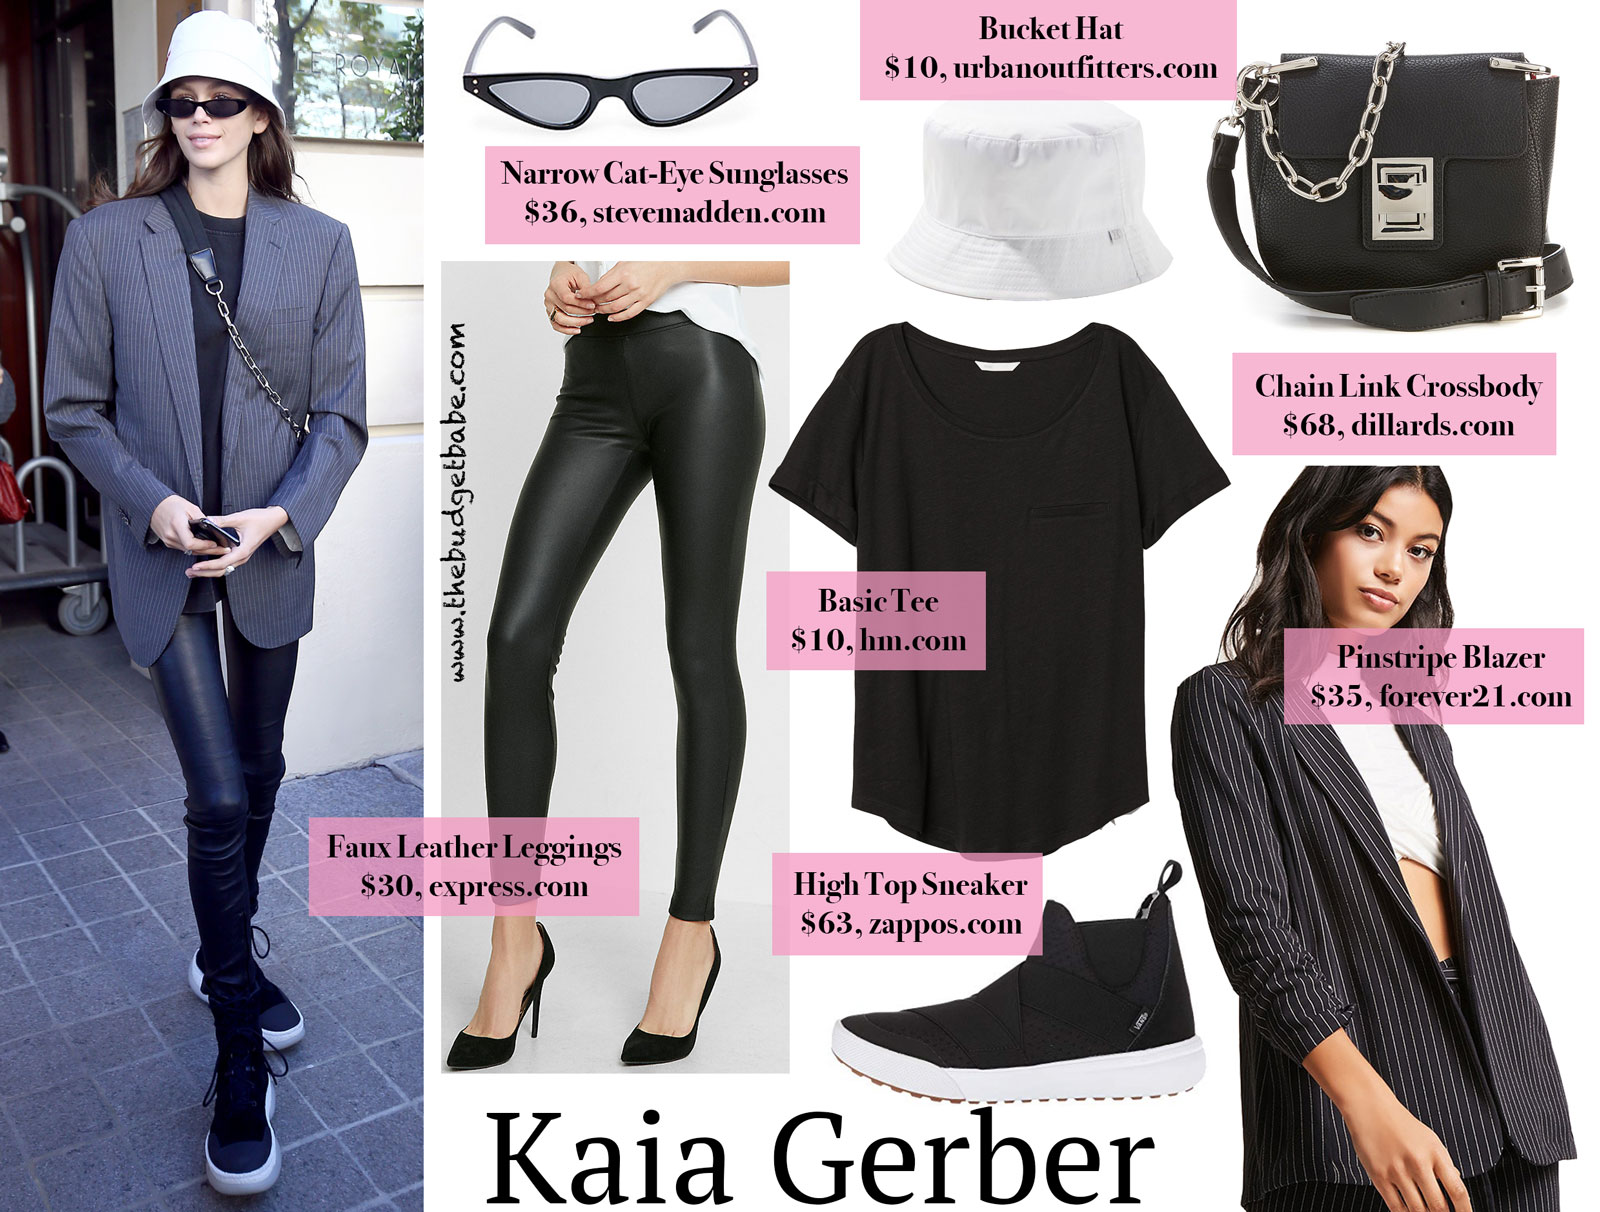 c905777ae05122 Kaia Gerber's Pinstripe Blazer and Leather Leggings Look for Less